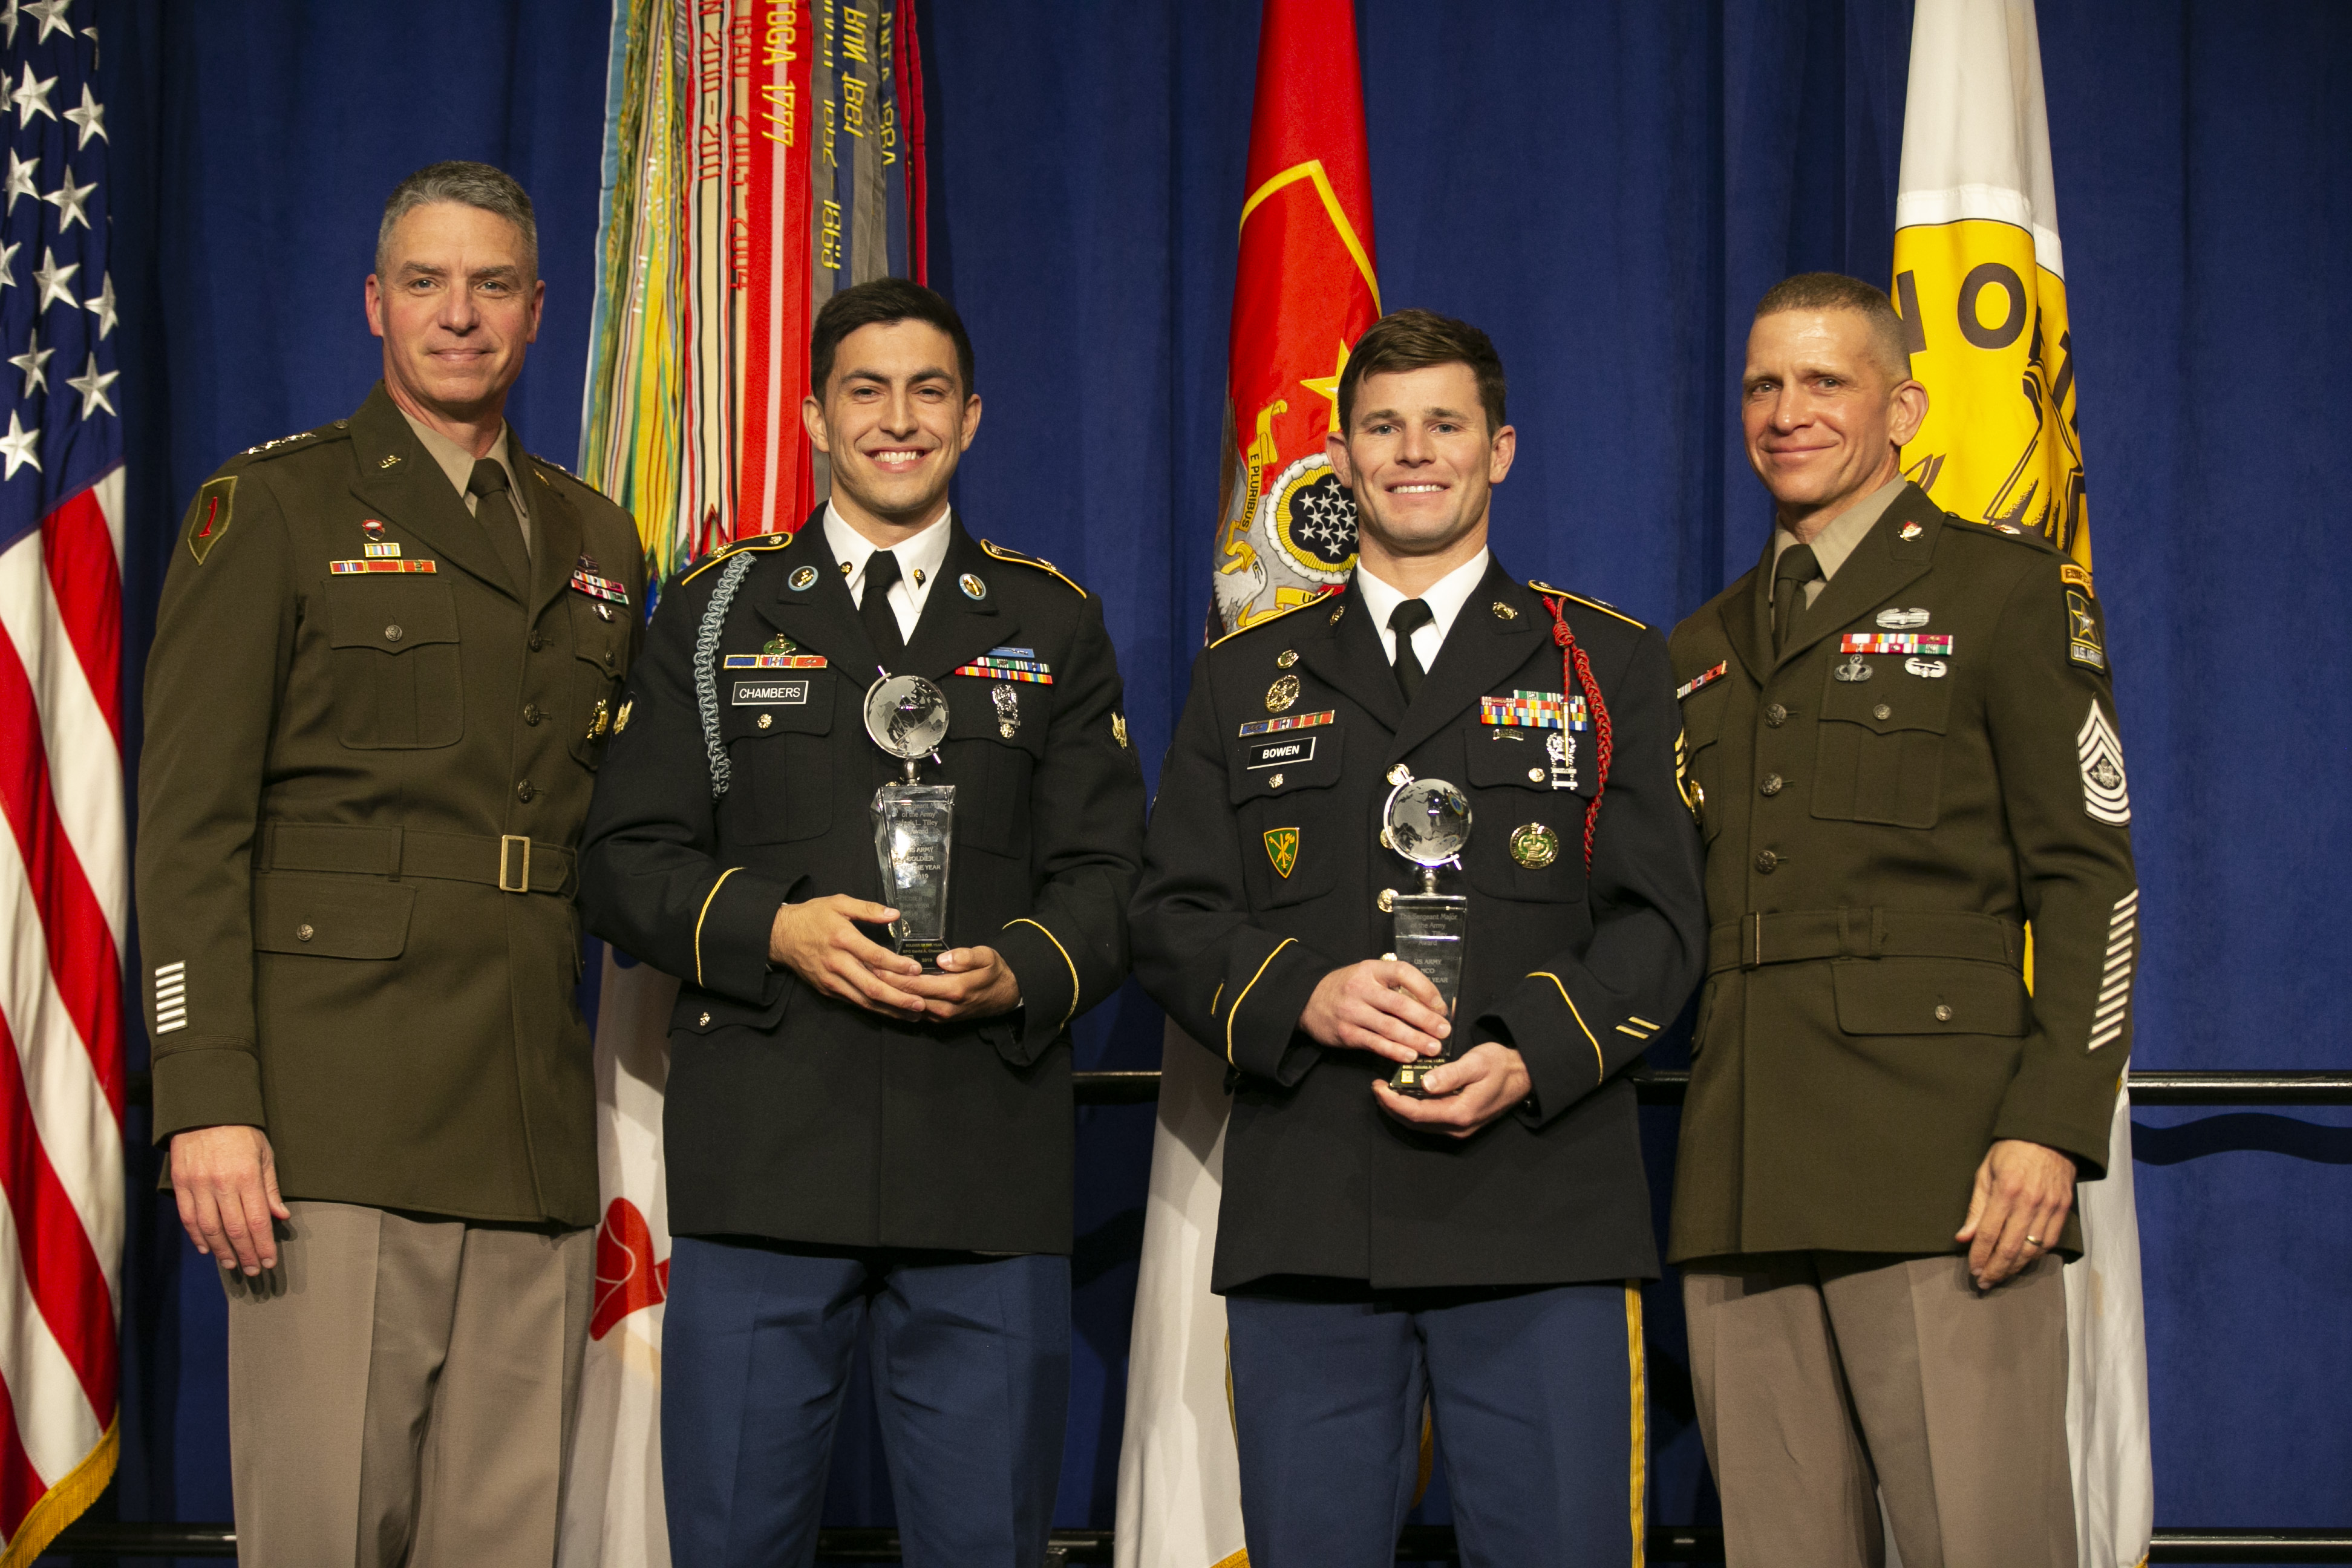 Army Vice Chief of Staff Gen. Joseph Martin, left, and Sgt. Maj. of the Army Michael Grinston, right, stand with the 2019 Soldier of the Year Spc. David Chambers, second from left, and the Noncommissioned Officer of the Year Staff Sgt. Dakota Bowen.